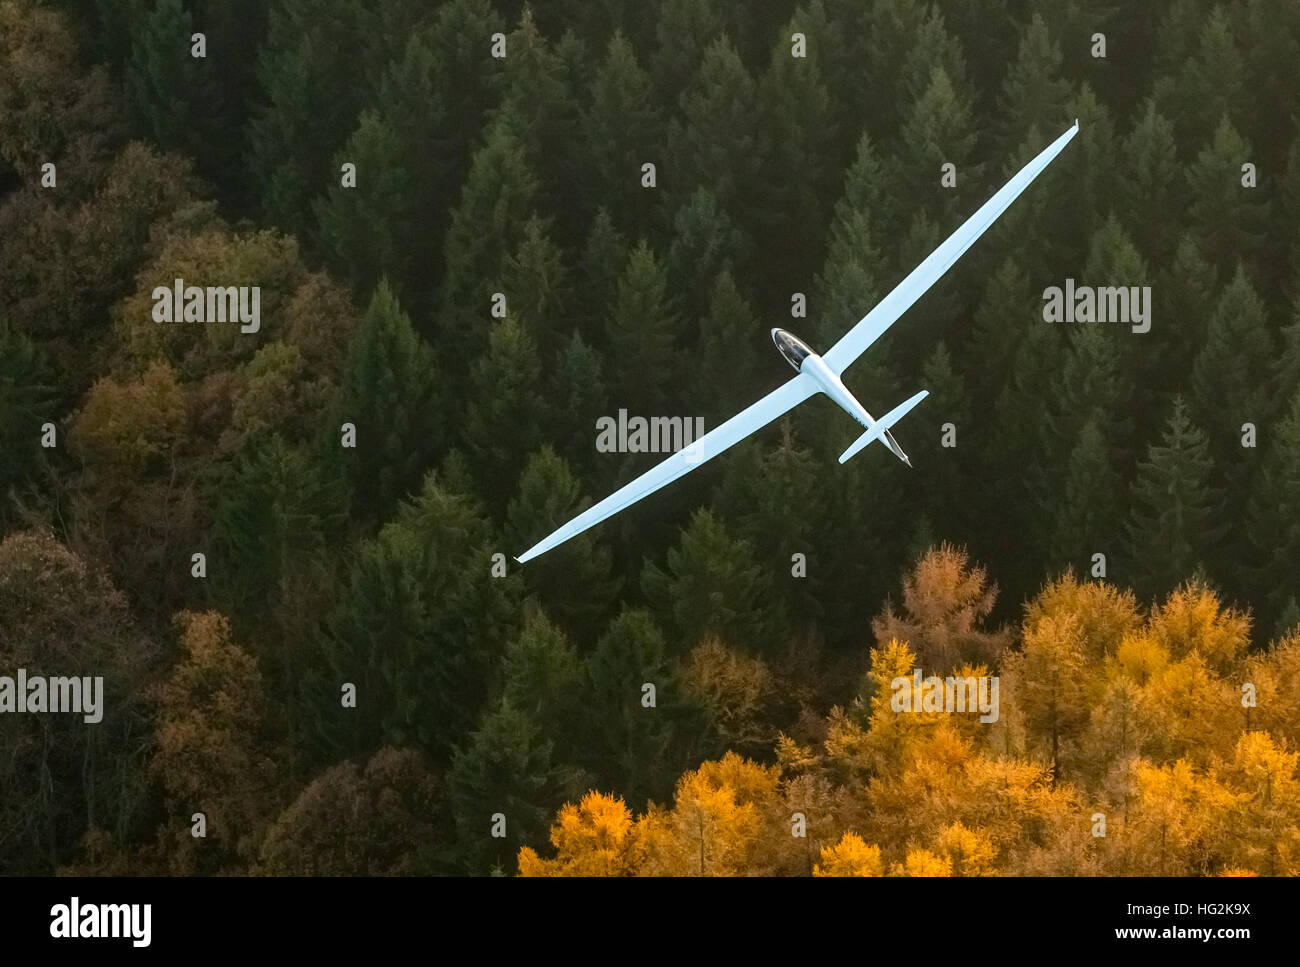 Aerial view, Duo Discus D-5443 from the LSC Oeventrop e.V. over the autumnal forests of Oeventrop, - Stock Image